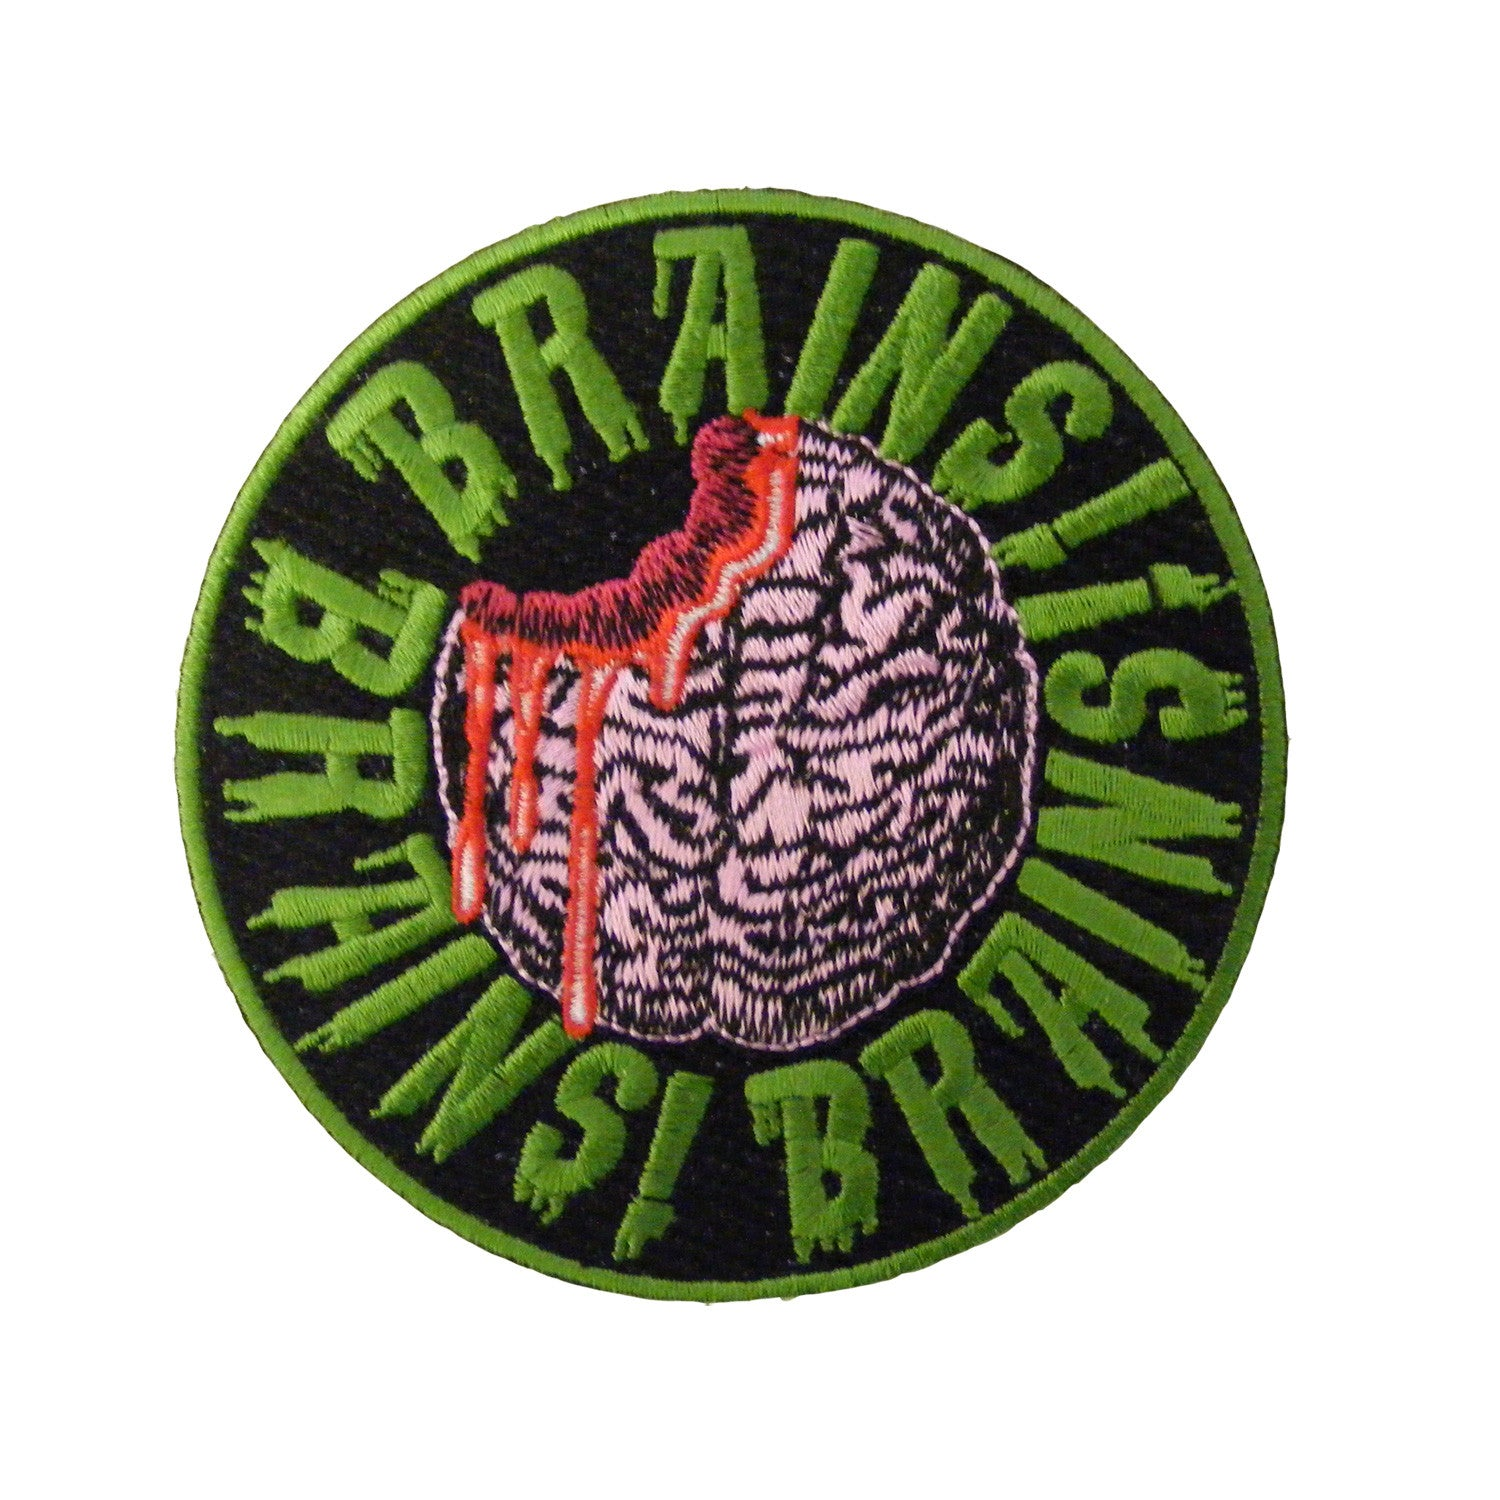 Brains Brains Brains Patch